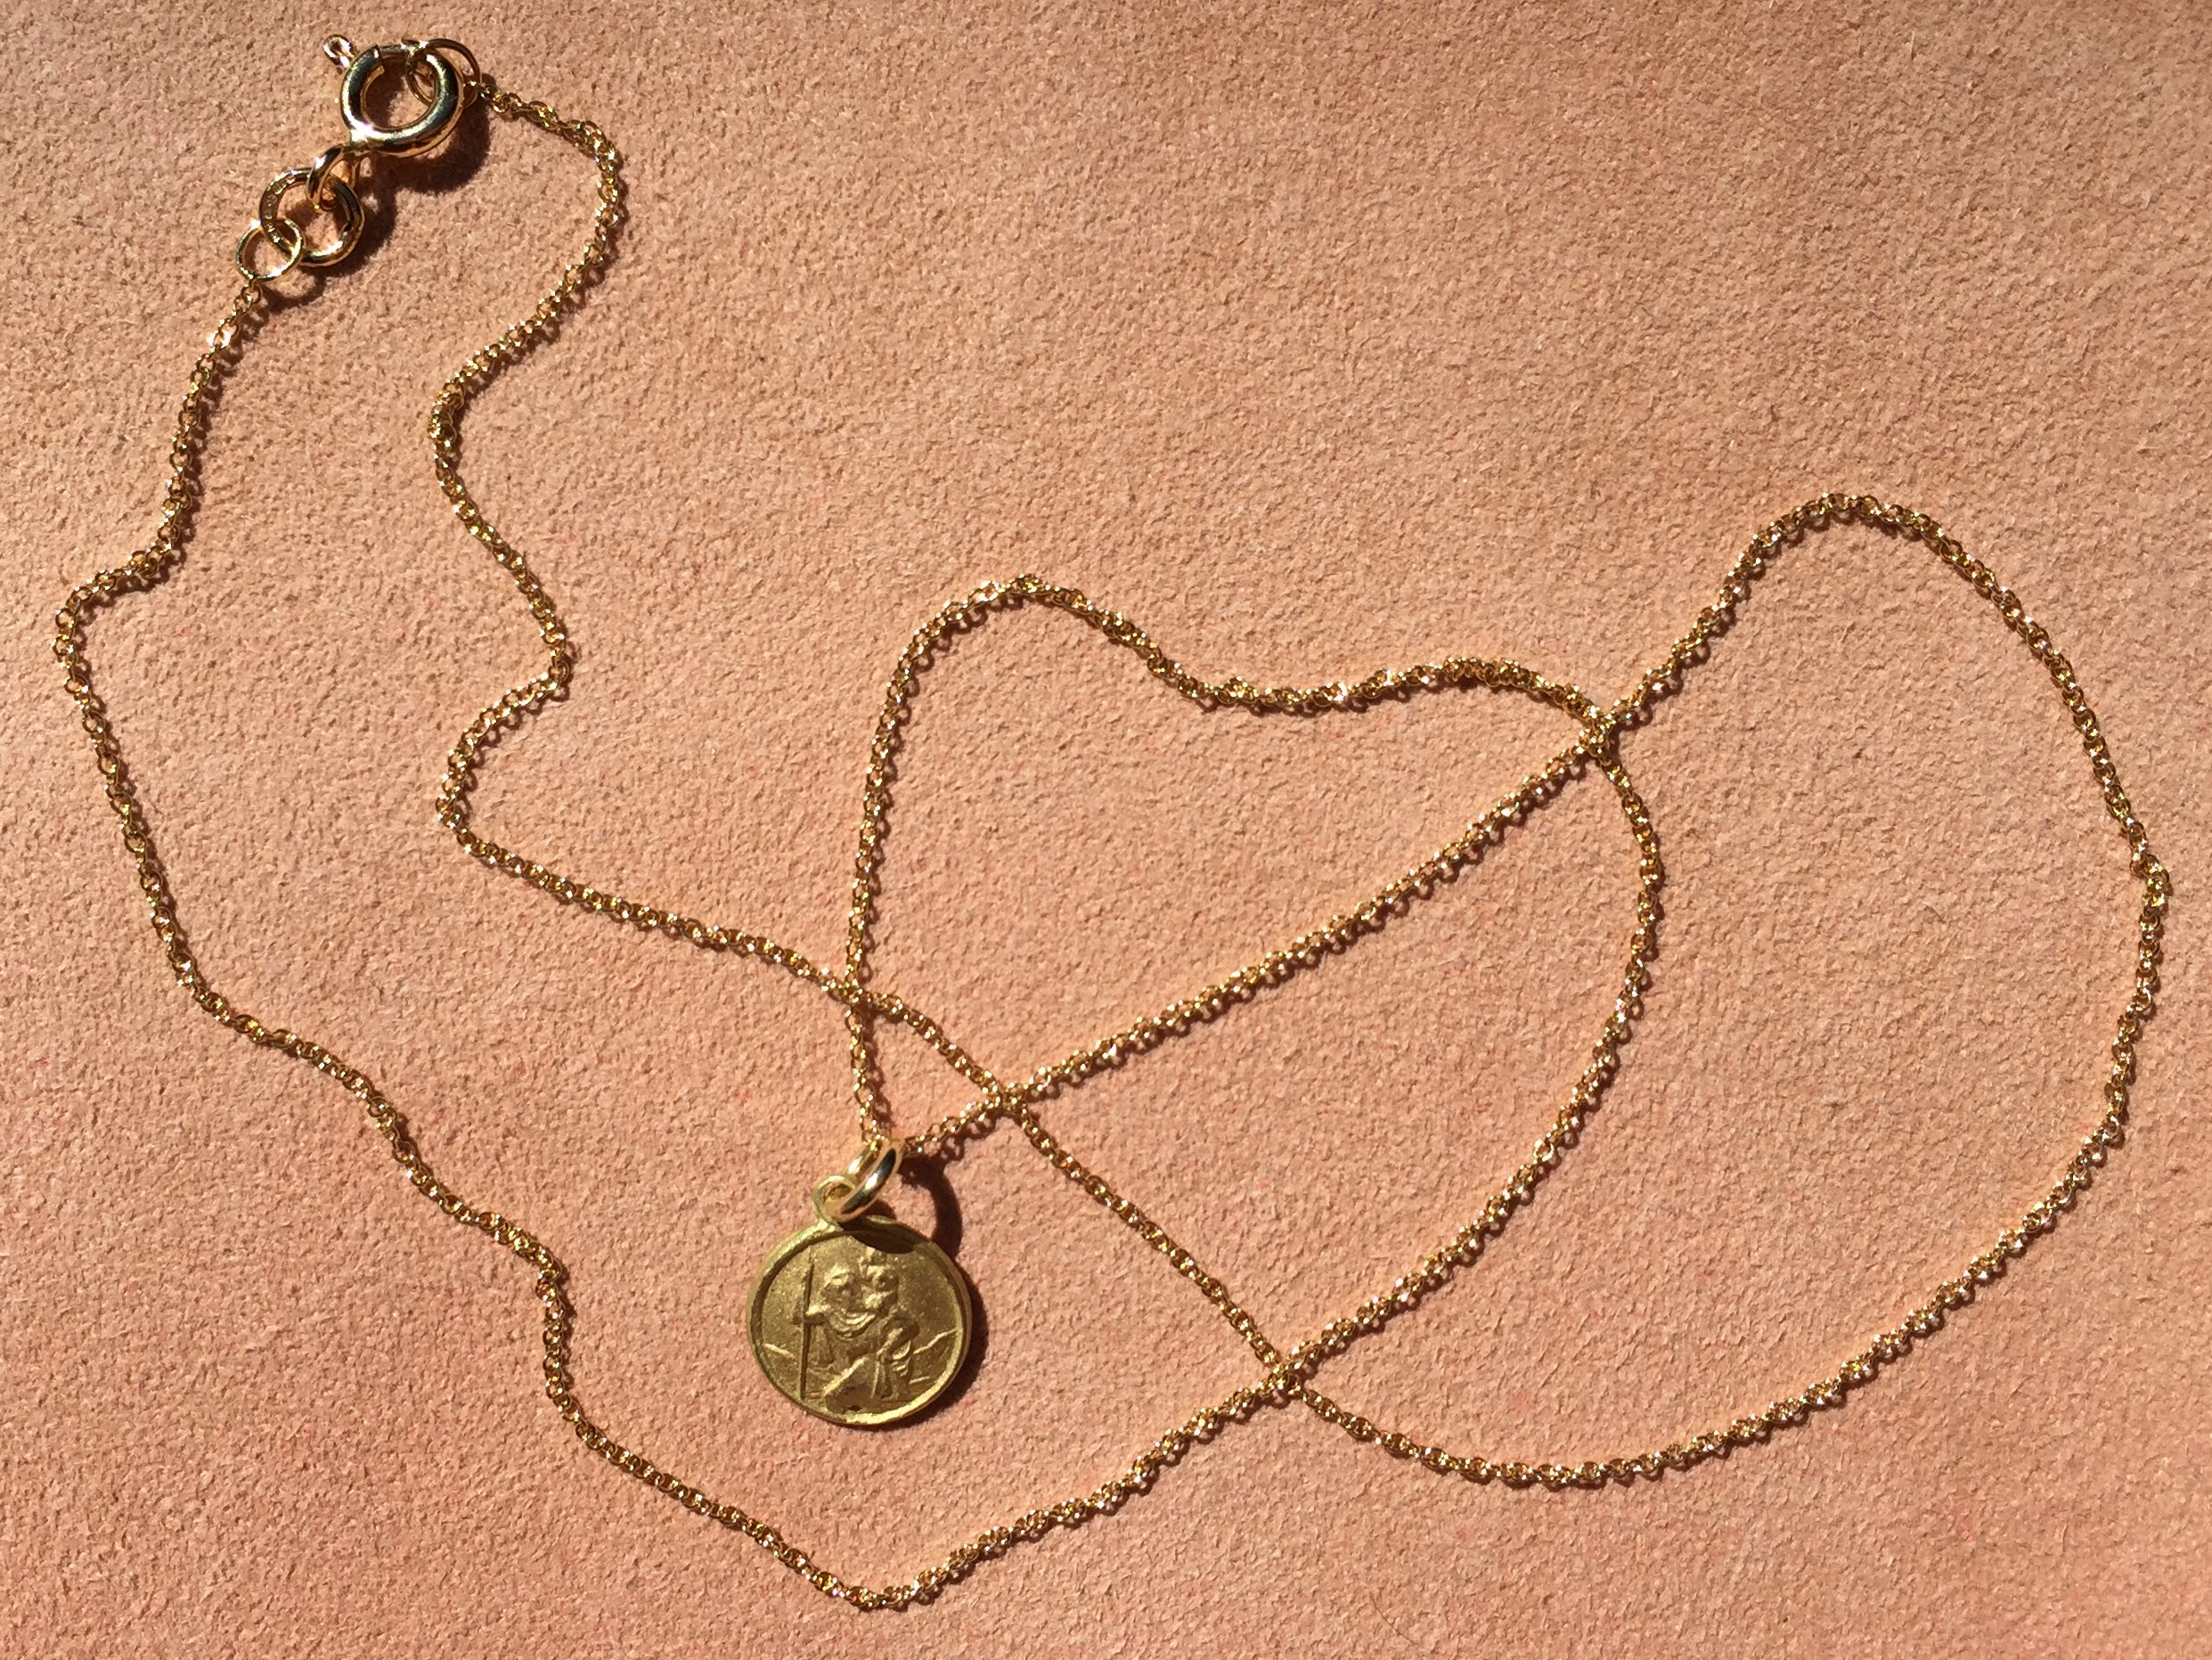 18CT YELLOW ST. CHRISTOPHER MEDALLION NECKLACE